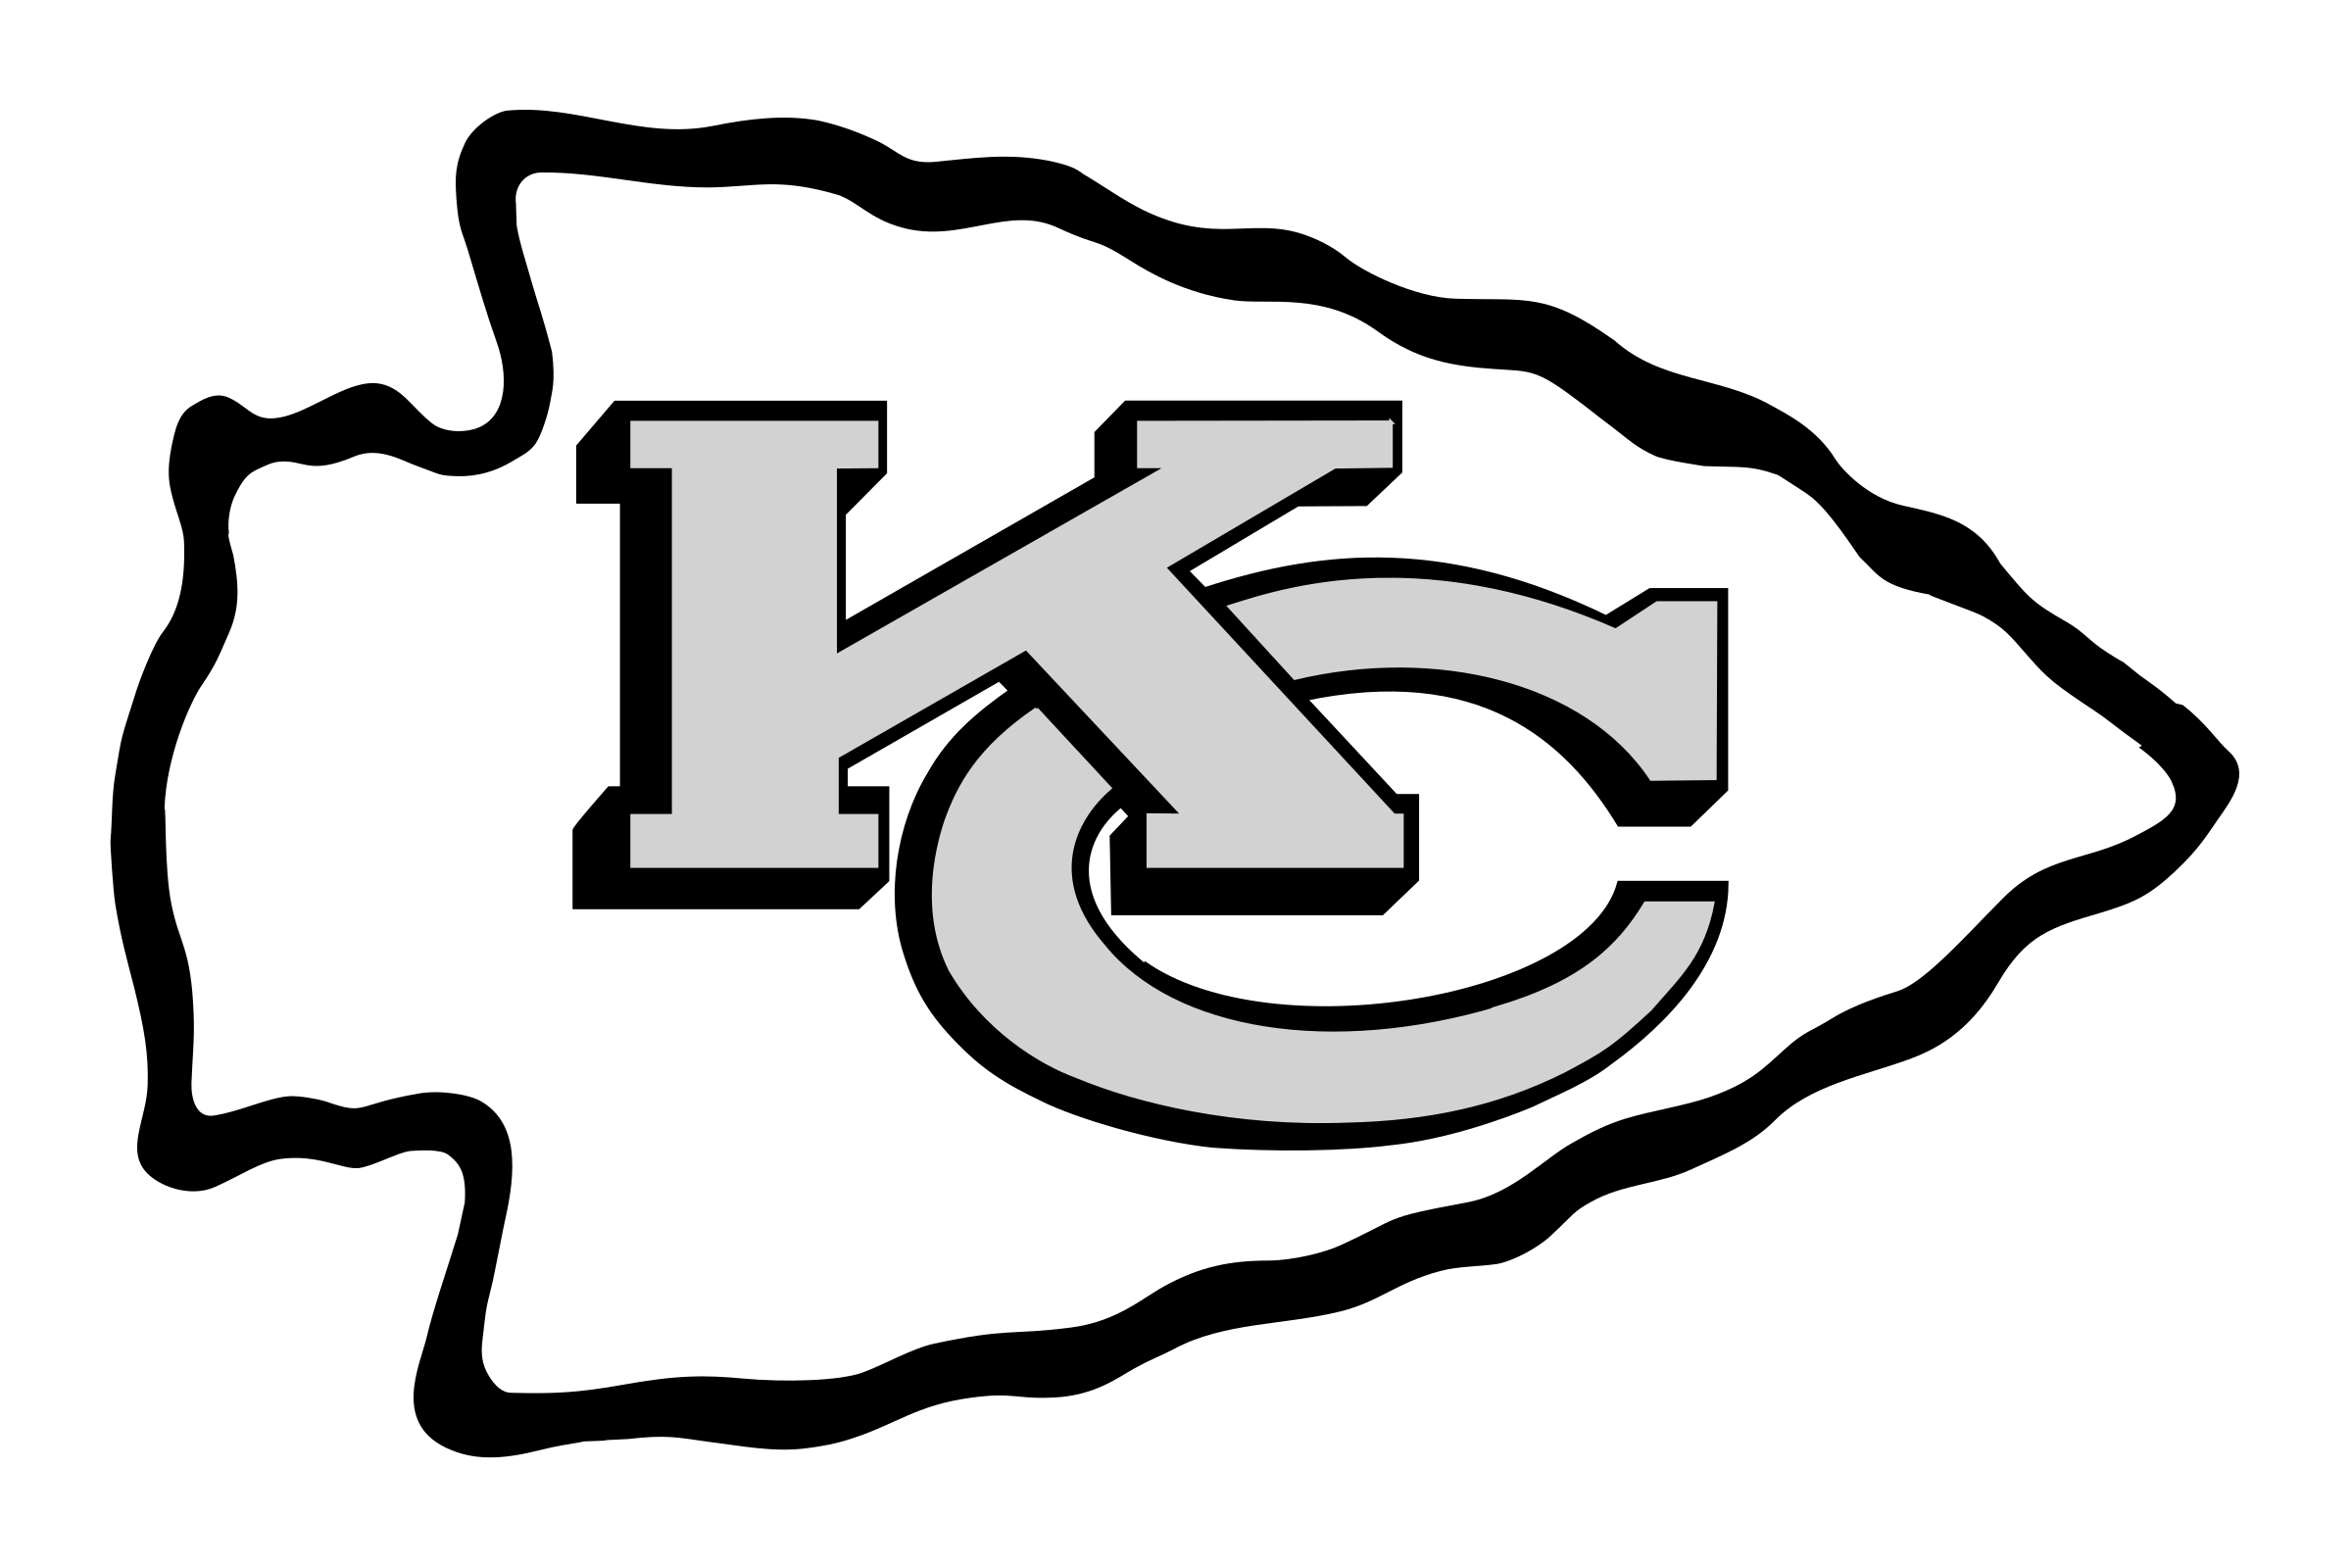 Kansas City Chiefs logo black and white - Kansas City Chiefs Vector PNG